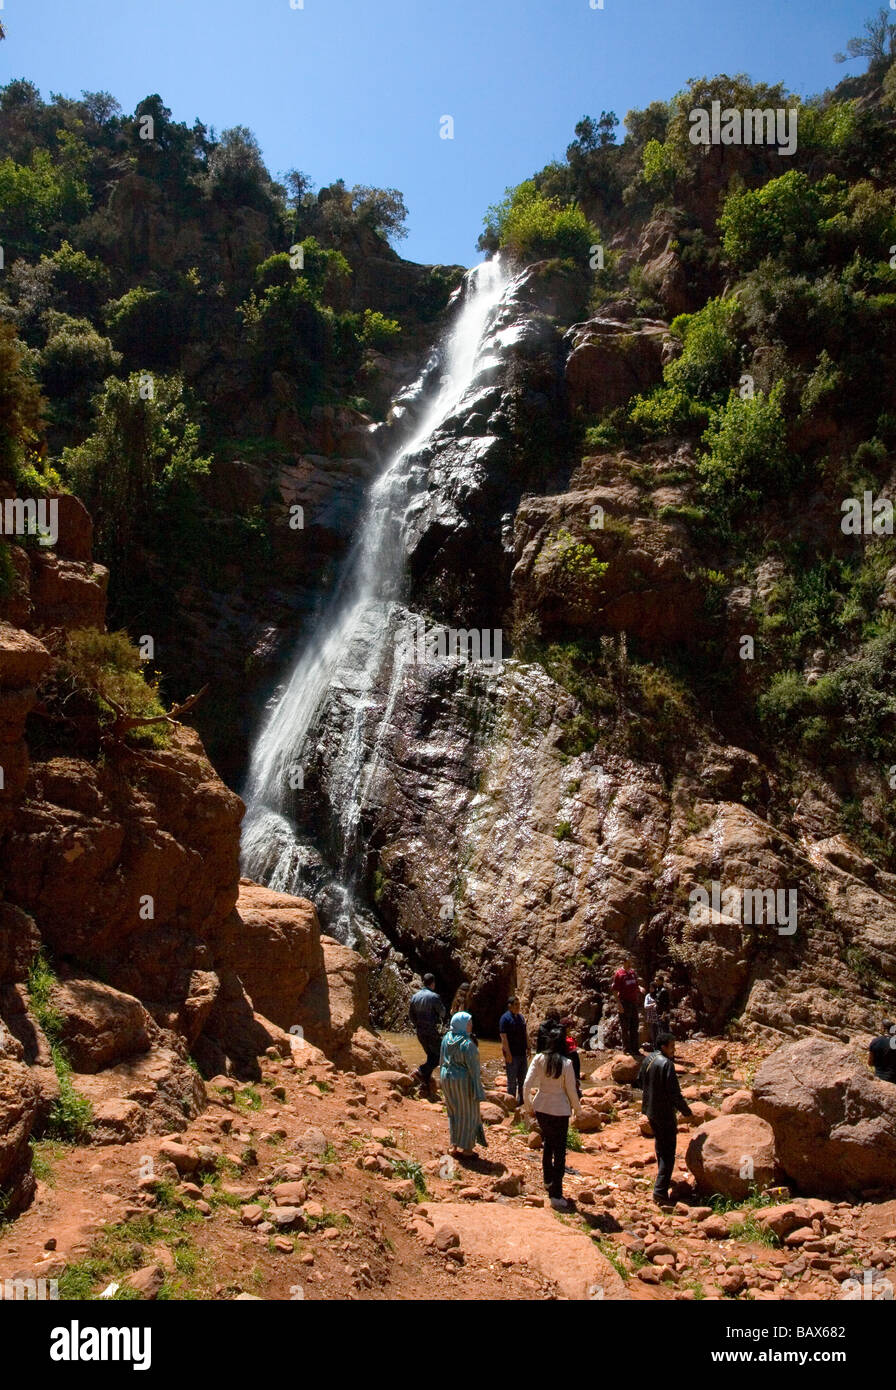 Waterfalls in the Ourika Valley Morocco near Marrakech - Stock Image